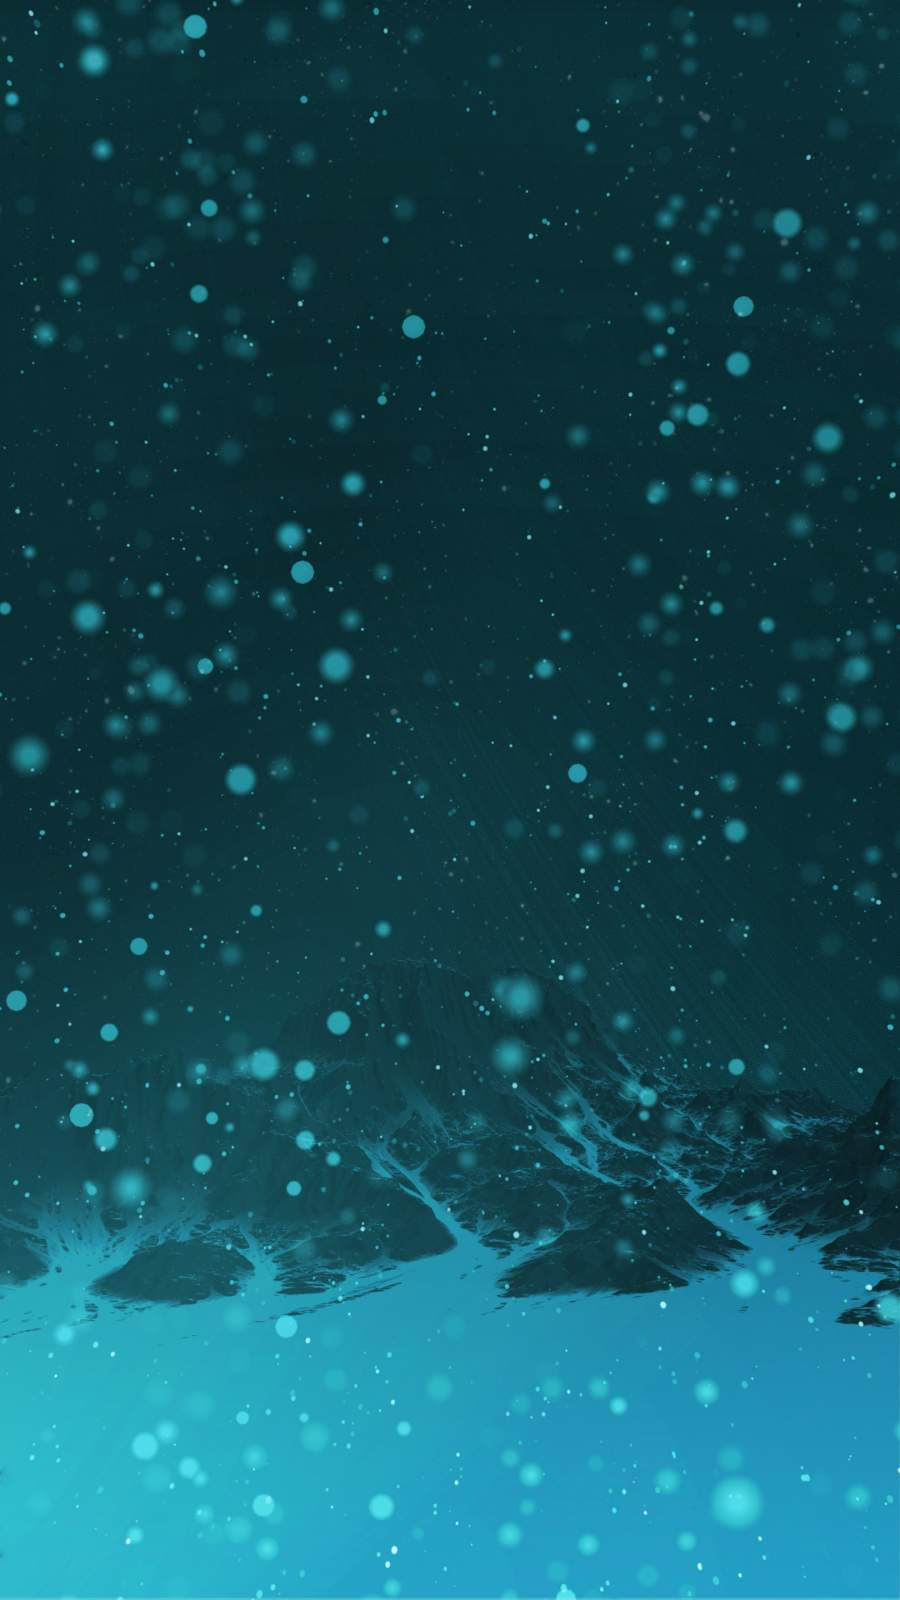 Mount Snow Peak iPhone Wallpaper